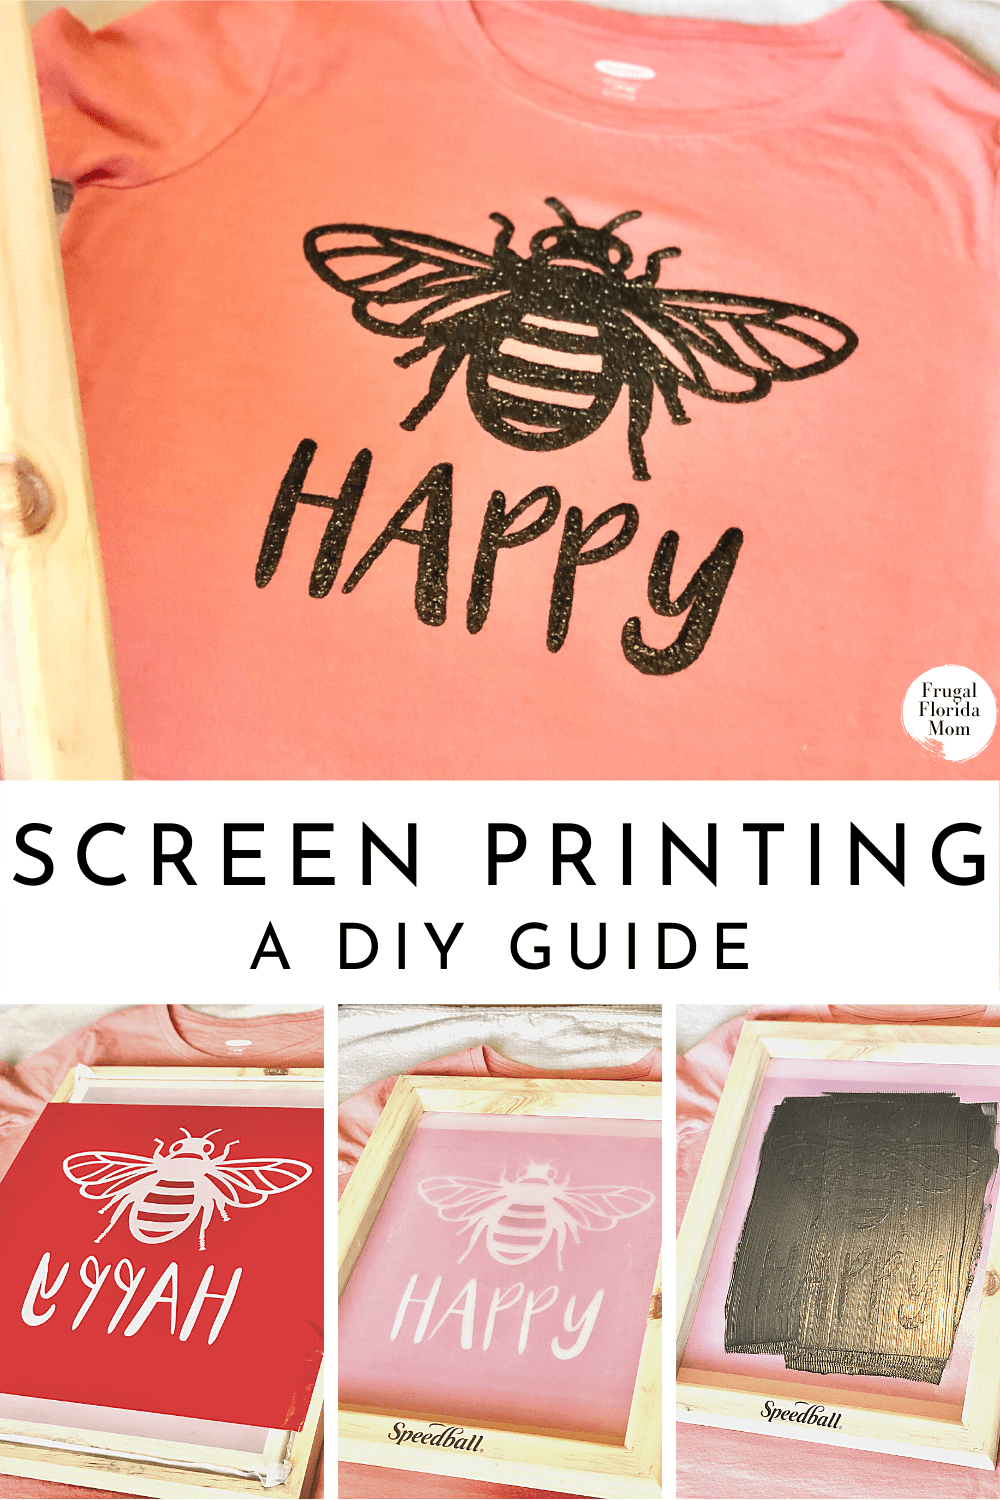 Https Frugalfloridamom Com 2018 09 04 Screen Printing With Your Cricut Or Silhouette 3746858717 In 2020 Diy Screen Printing Screen Printing Tutorial Diy Prints